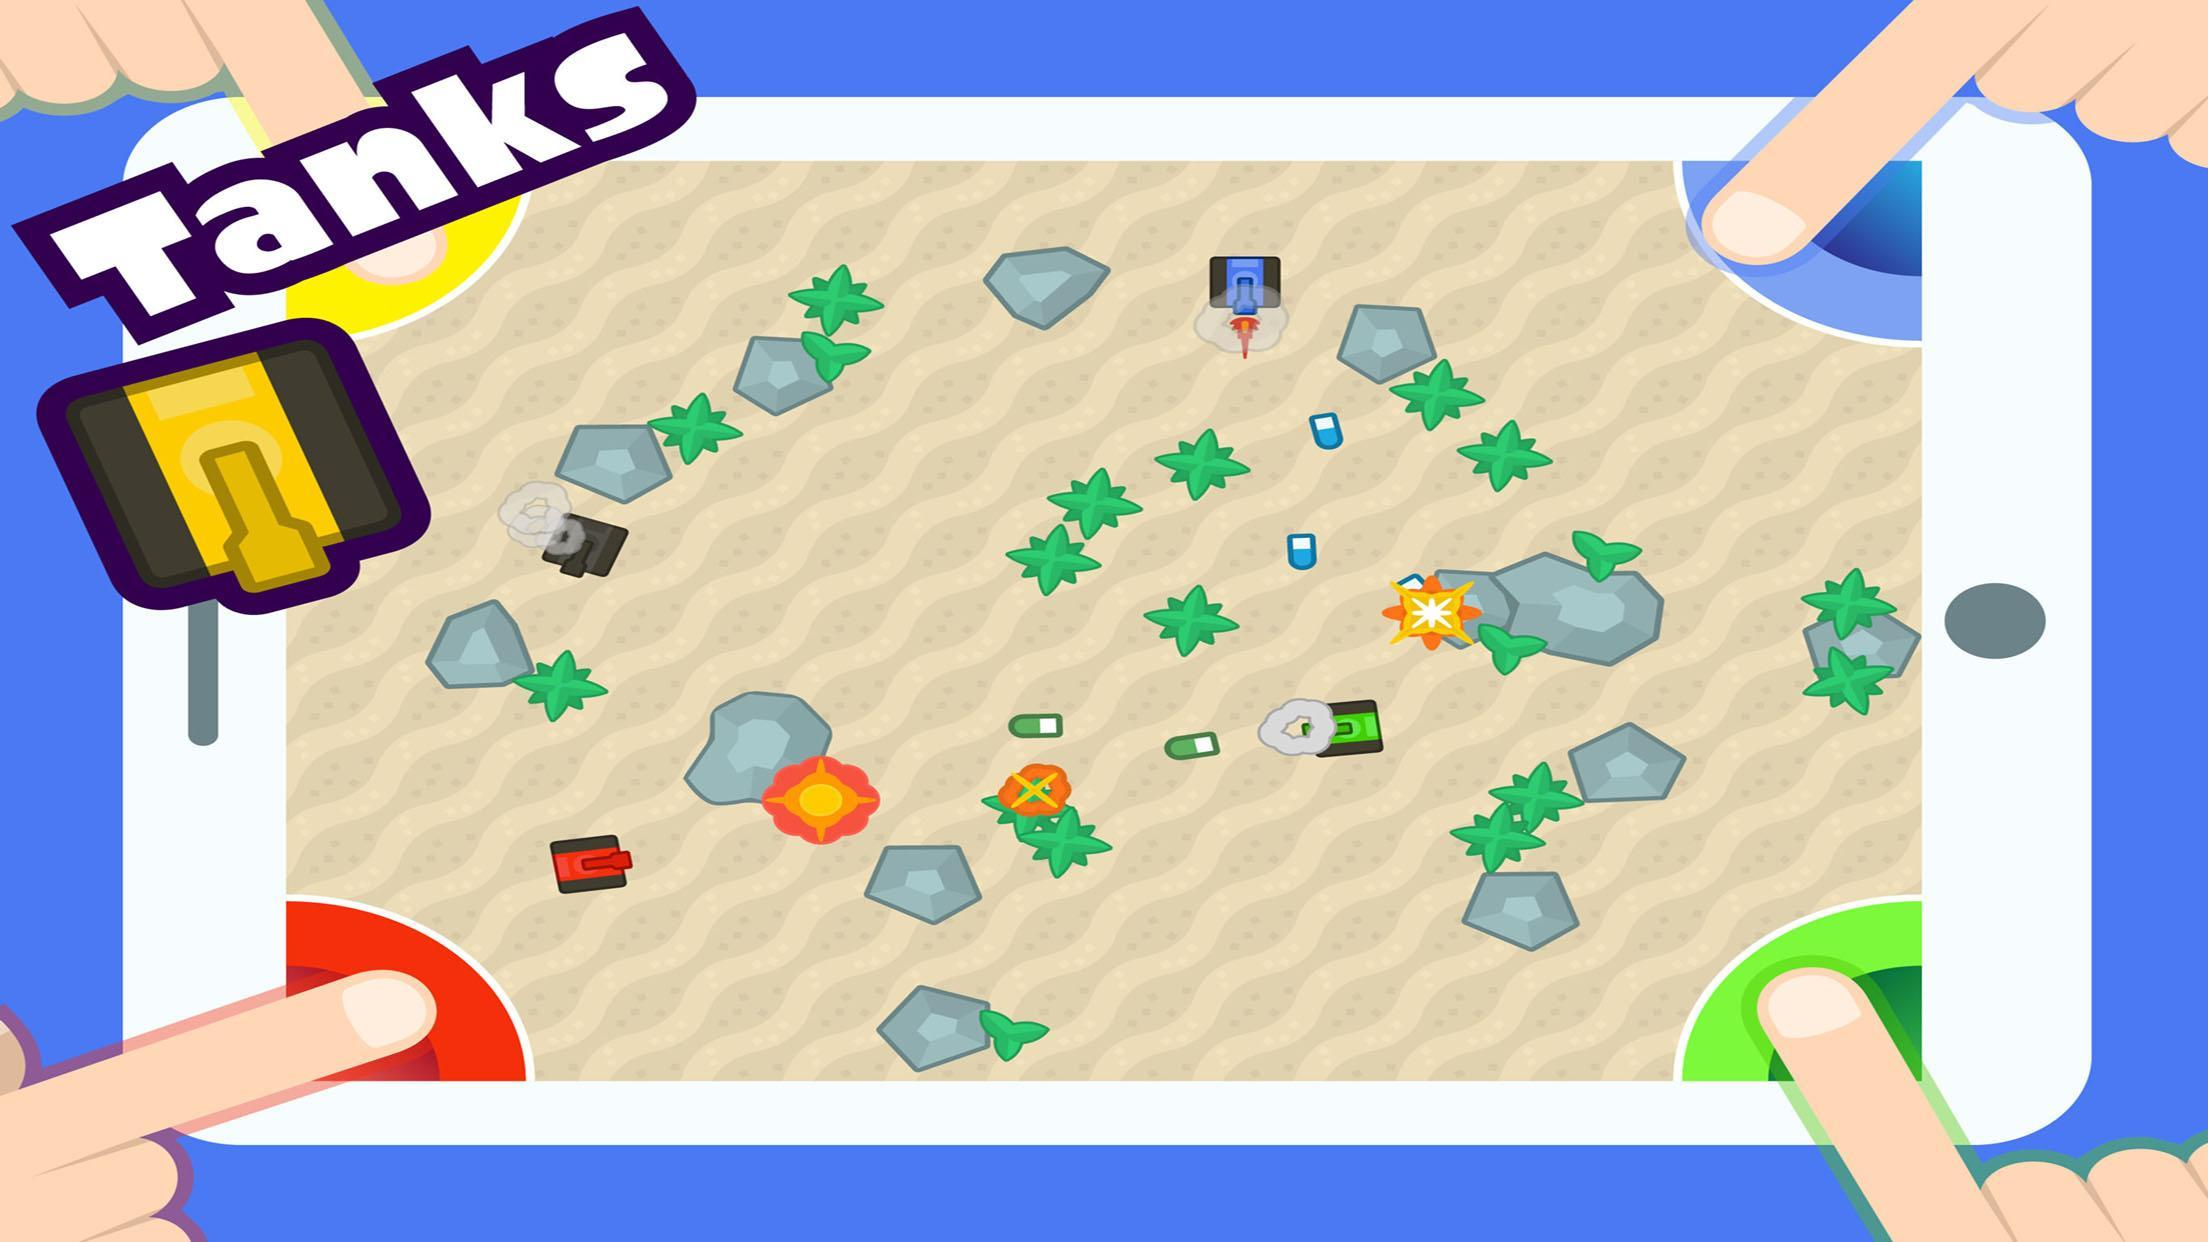 2 3 4 Player Mini Games for Android - APK Download